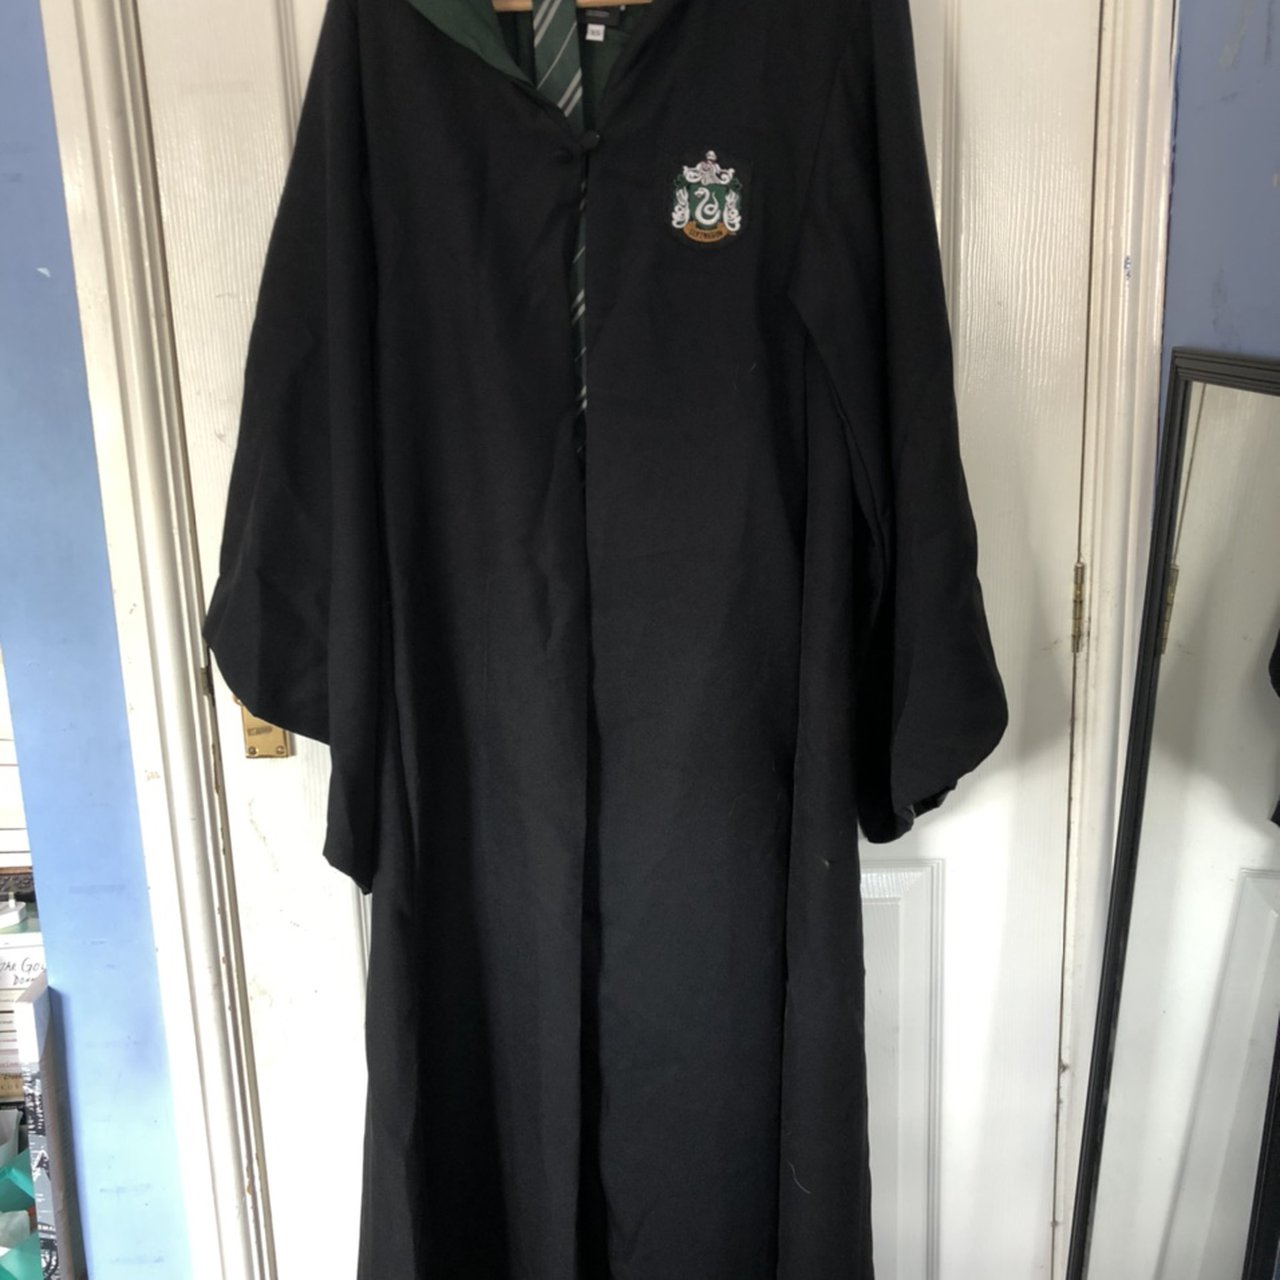 Authentic Harry Potter Slytherin Robes With Tie Depop